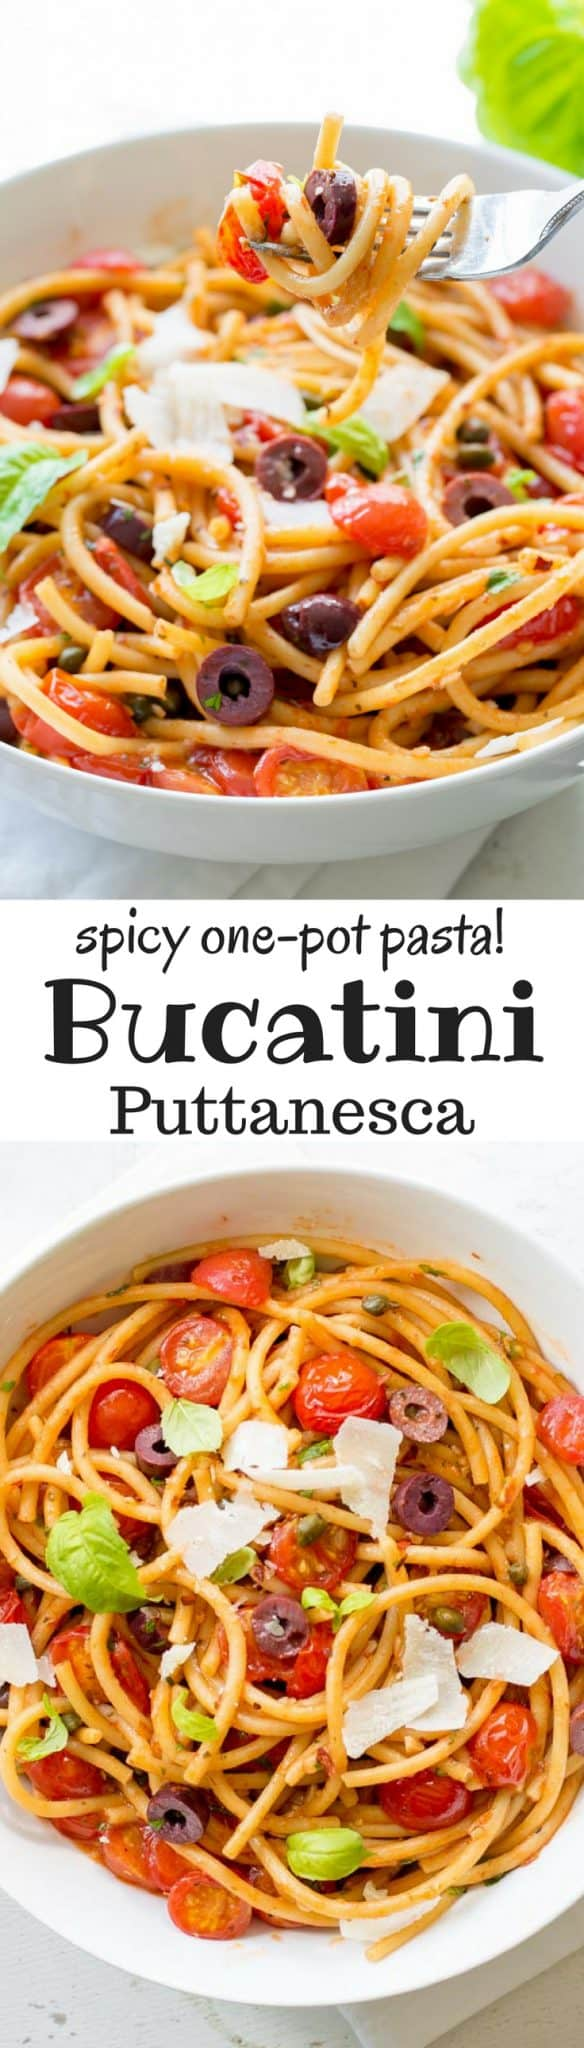 Bucatini Puttanesca ~ a deliciously easy one-pot pasta dish with a simple but zesty sauce and loads of fresh tomatoes, olives and capers. www.savingdessert.com anchovy | red pepper | bucatini pasta | spaghetti | cherry tomatoes | kalamata olives | capers | meatless monday